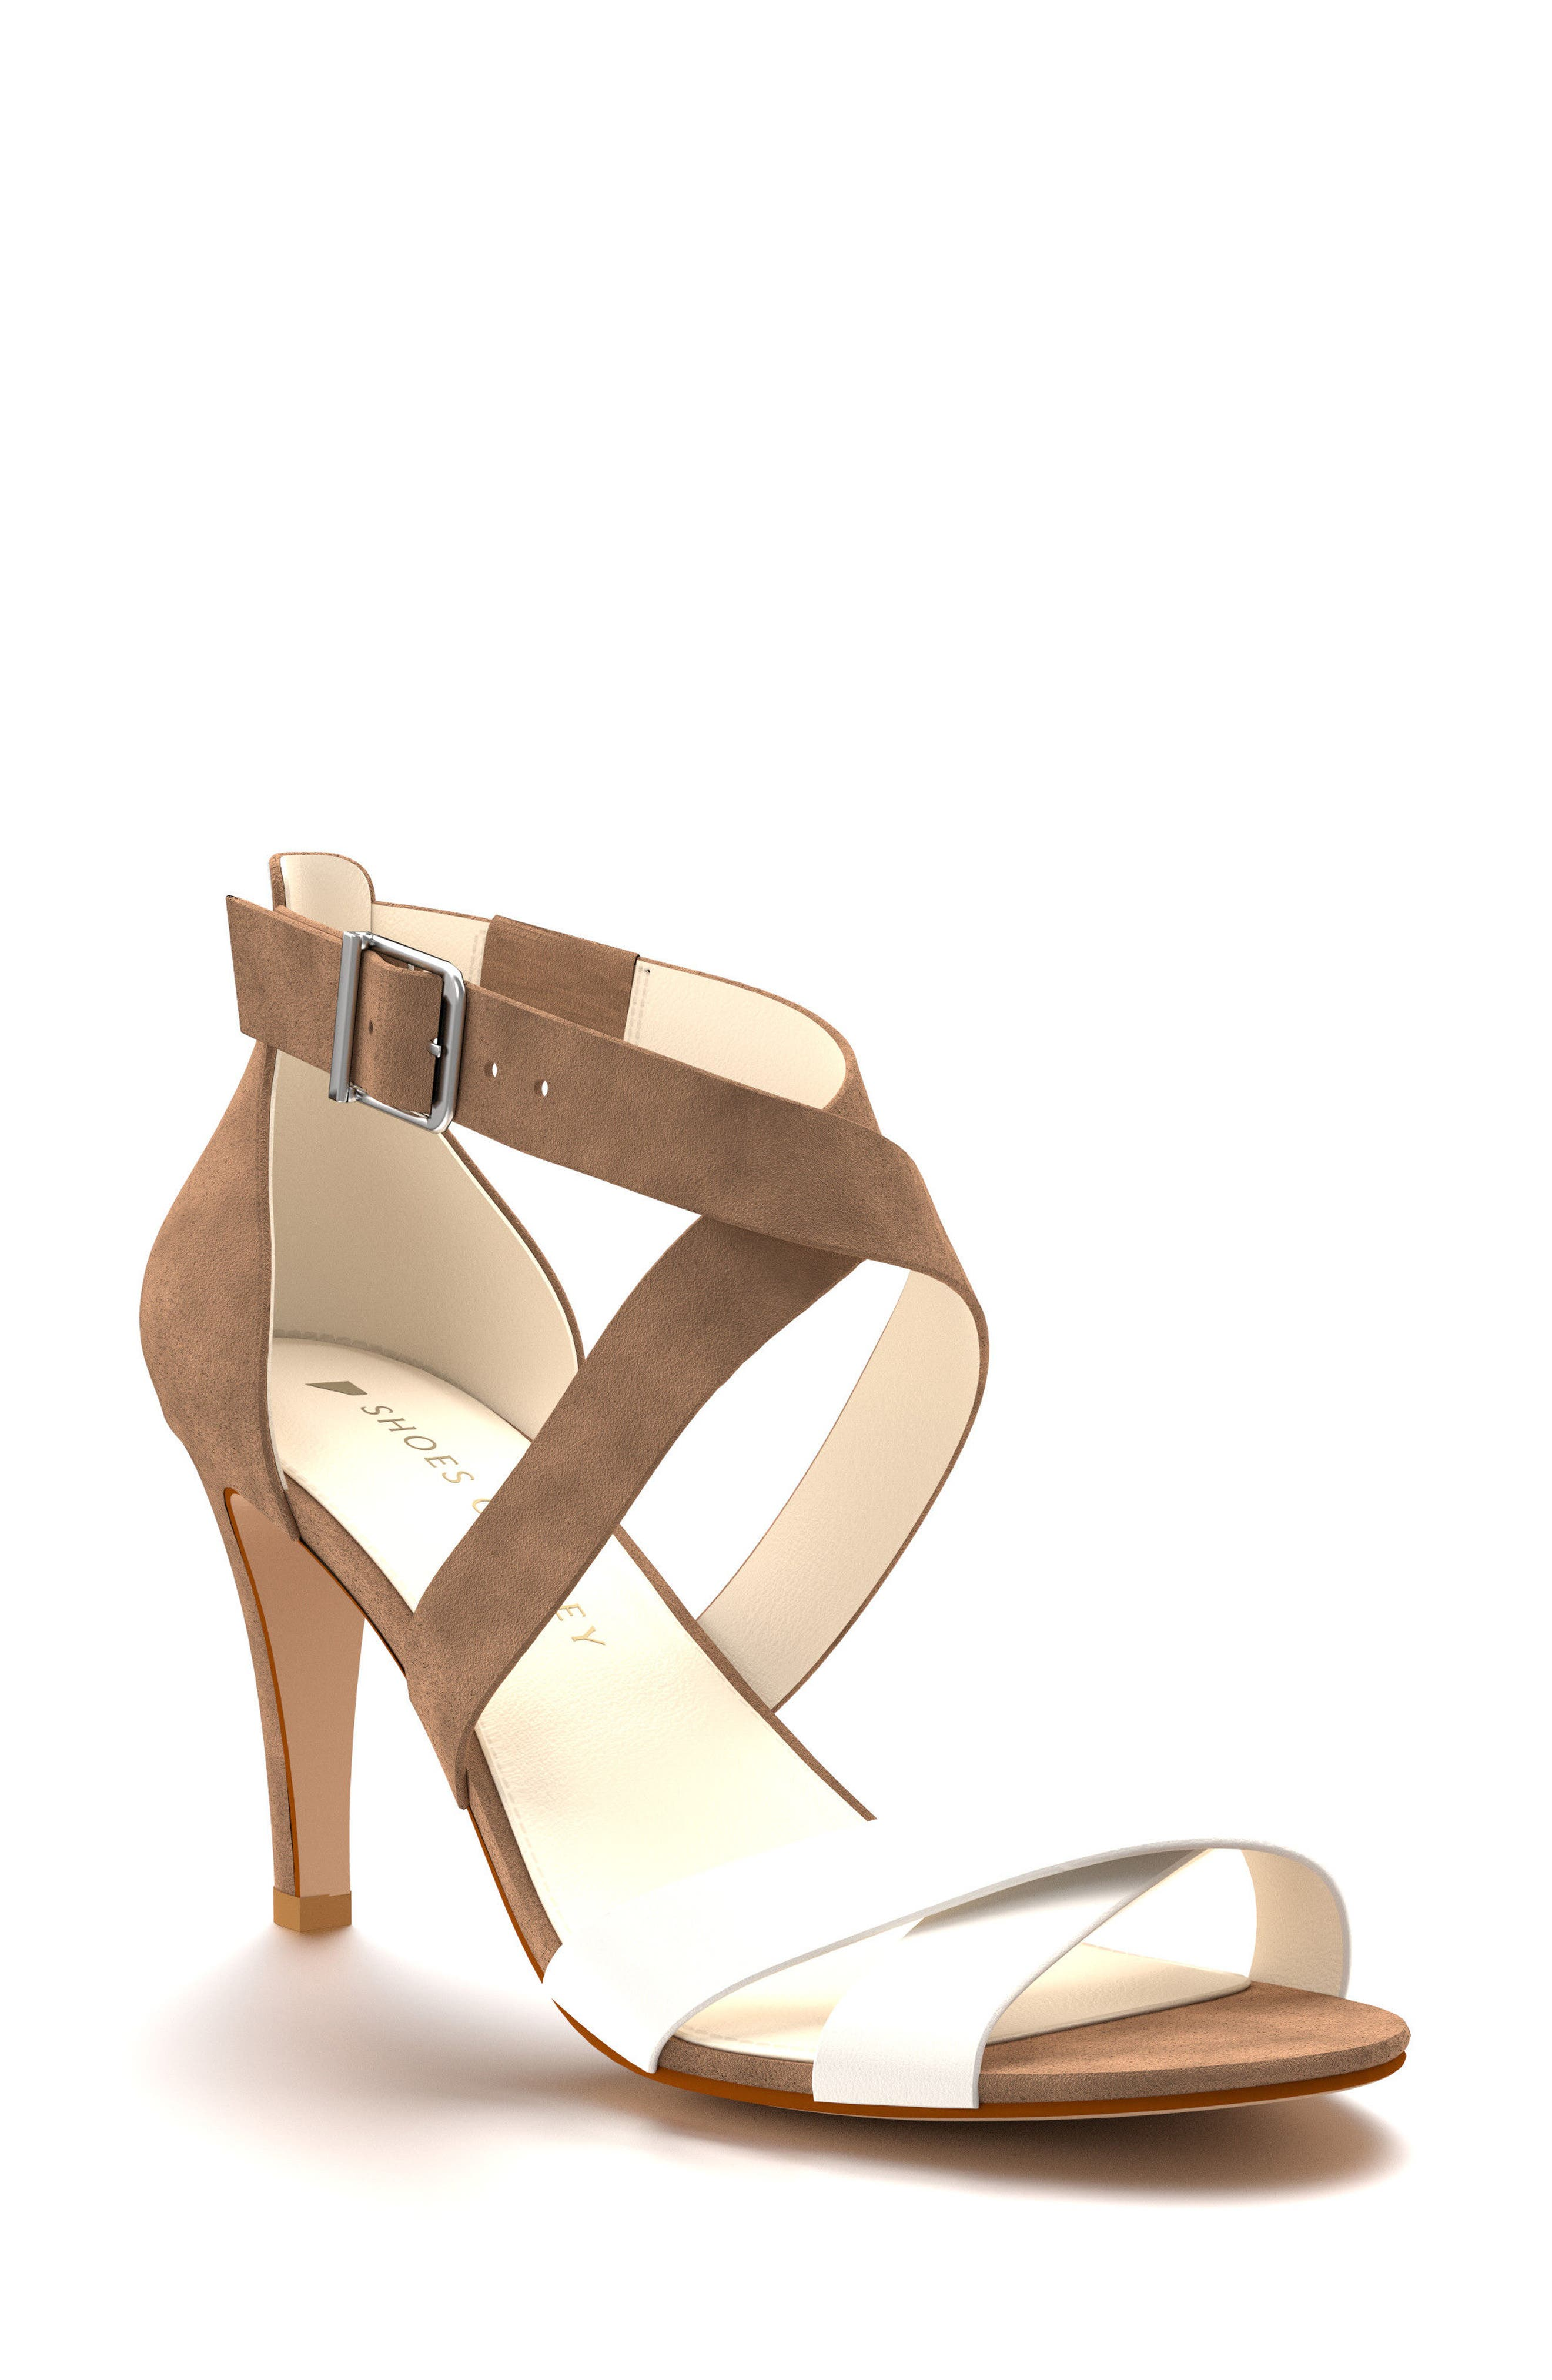 Crisscross Strappy Sandal,                             Main thumbnail 1, color,                             Tan Suede